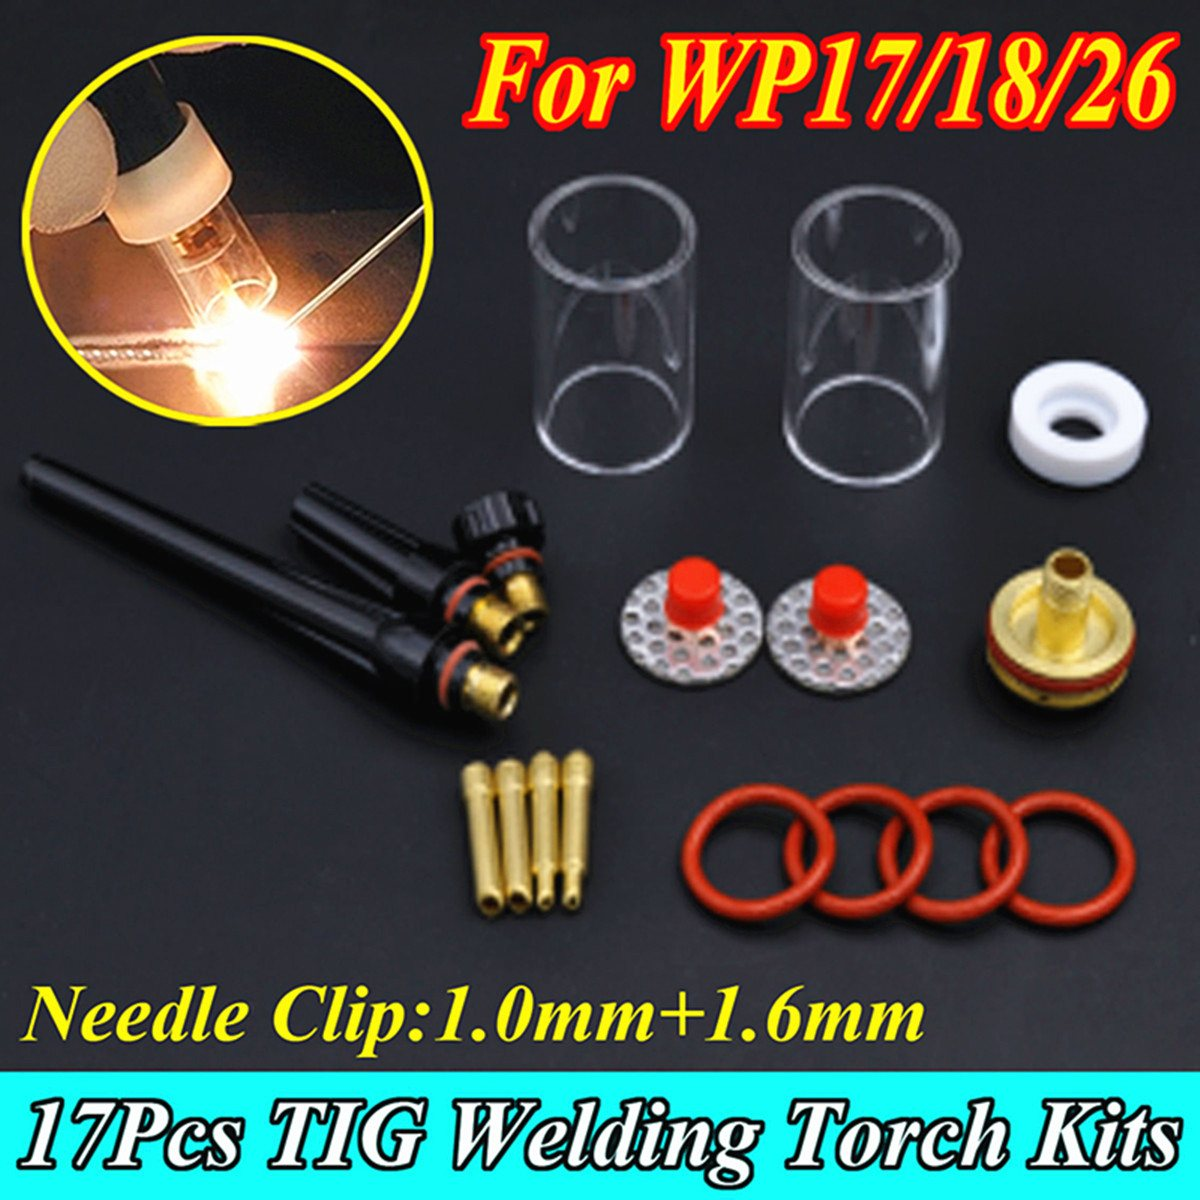 New 17Pcs TIG Welding Torch Stubby Collet Gas Lens Glass Nozzle Pryex Cup Kit with Heat-Resistant O-rings For WP-17/18/26 Series 17pcs tig welding torch stubby collet gas lens glass nozzle pryex cup kit with heat resistant o rings for wp 17 18 26 series